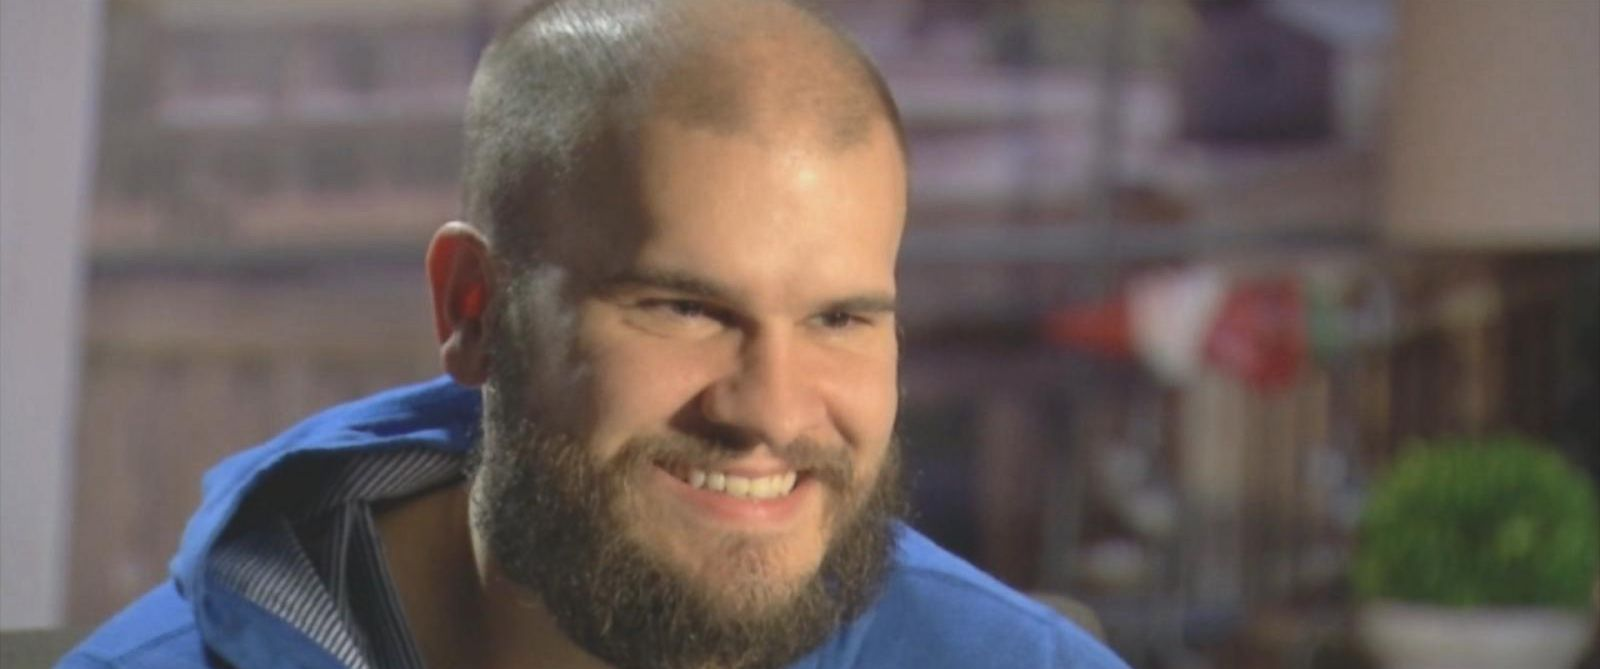 PHOTO: Nick Potts, 27, has been selected as the representative for his office Powerball pool.